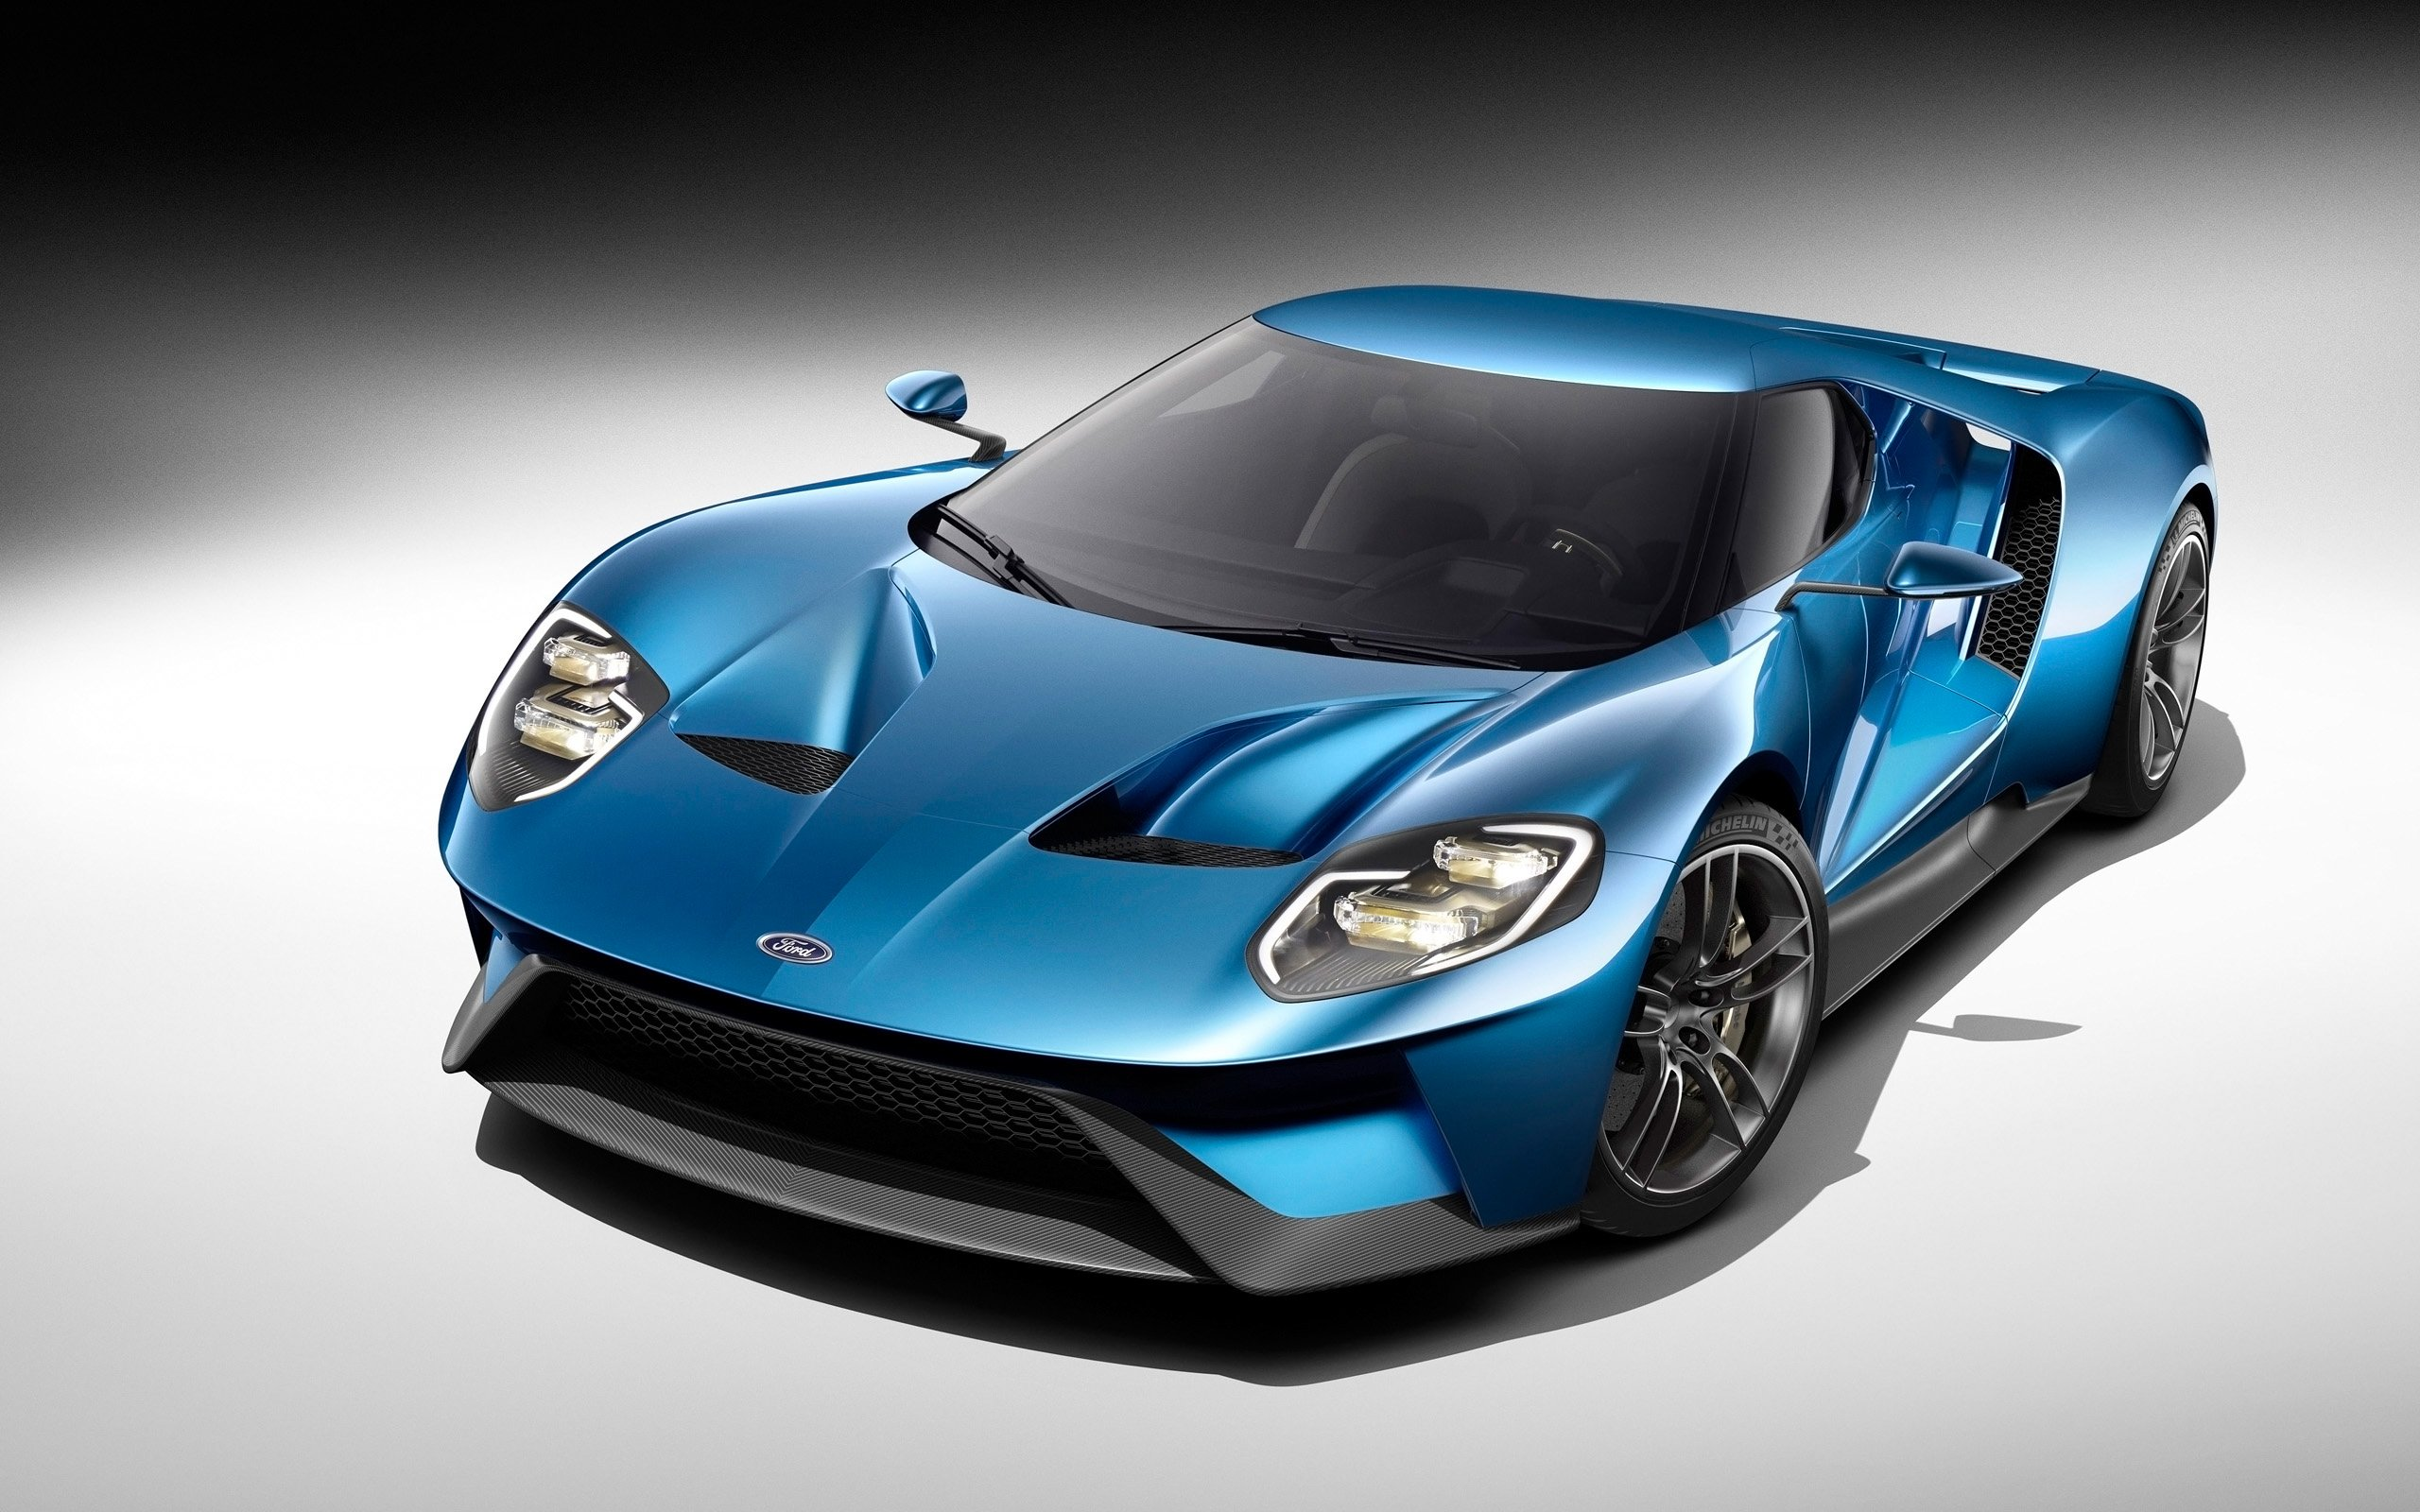 2016 Ford GT Wallpaper HD Car Wallpapers 2560x1600